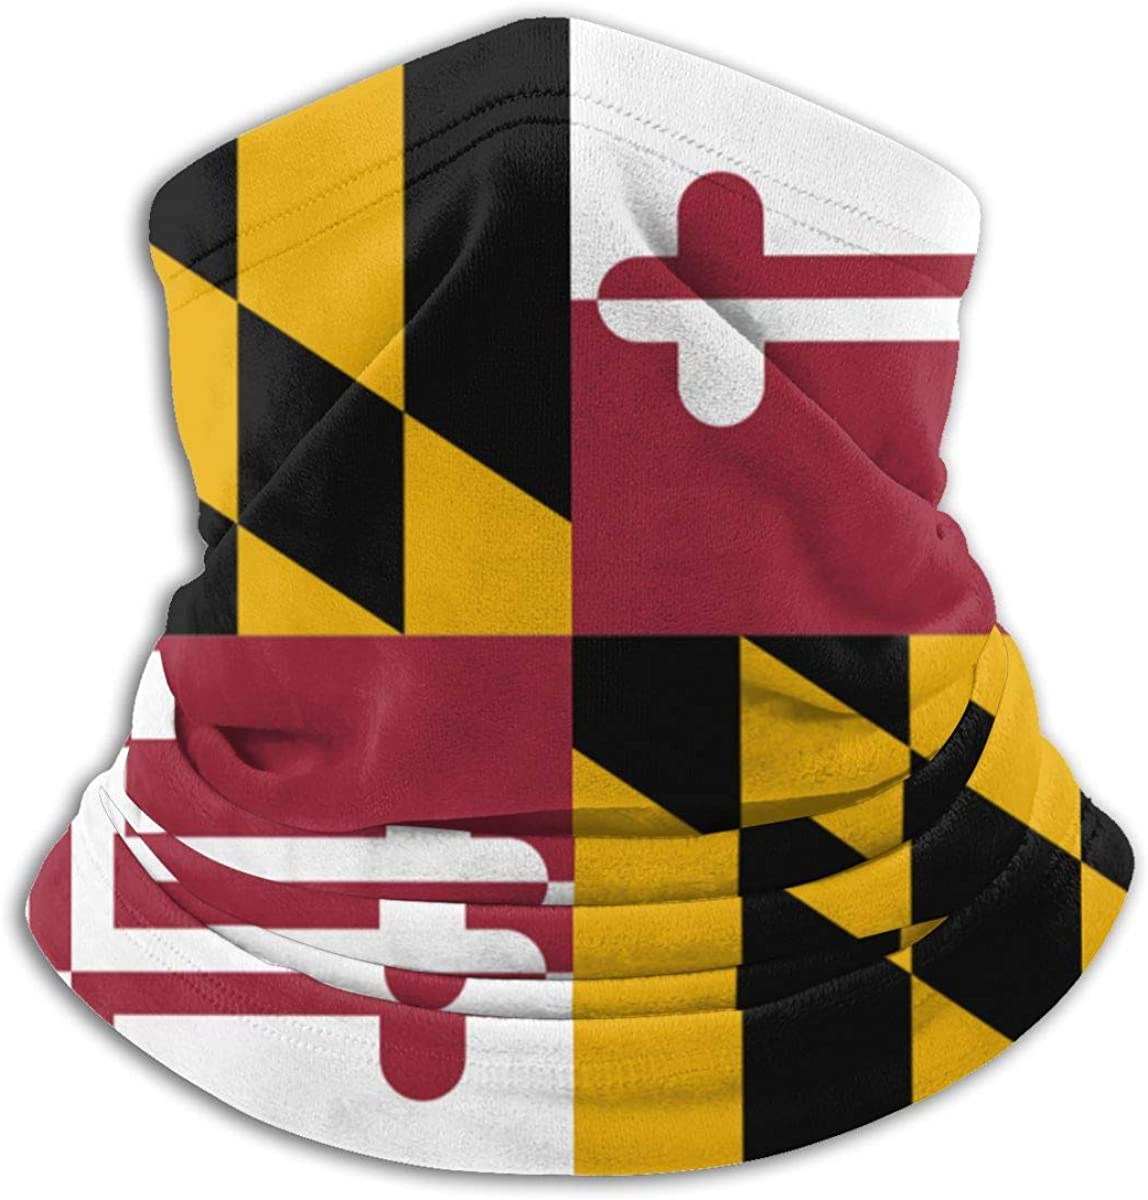 Maryland Crab Decals Flags Face M-ask Shield Protective Balaclava Men & Women - Cold Weather Face Cover Thermal Retention & Safety